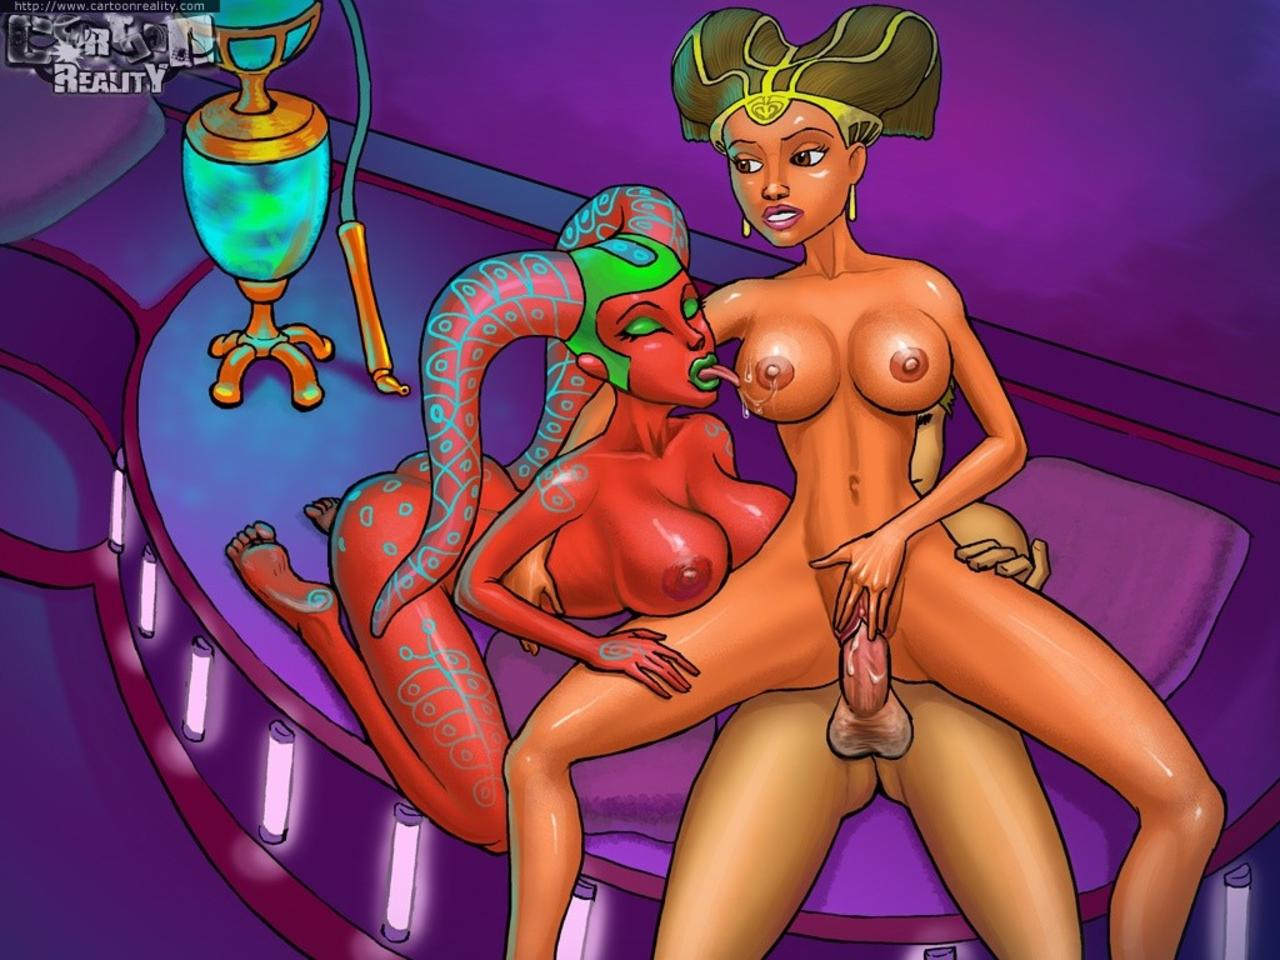 Cartoon star wars grils nude hentai image